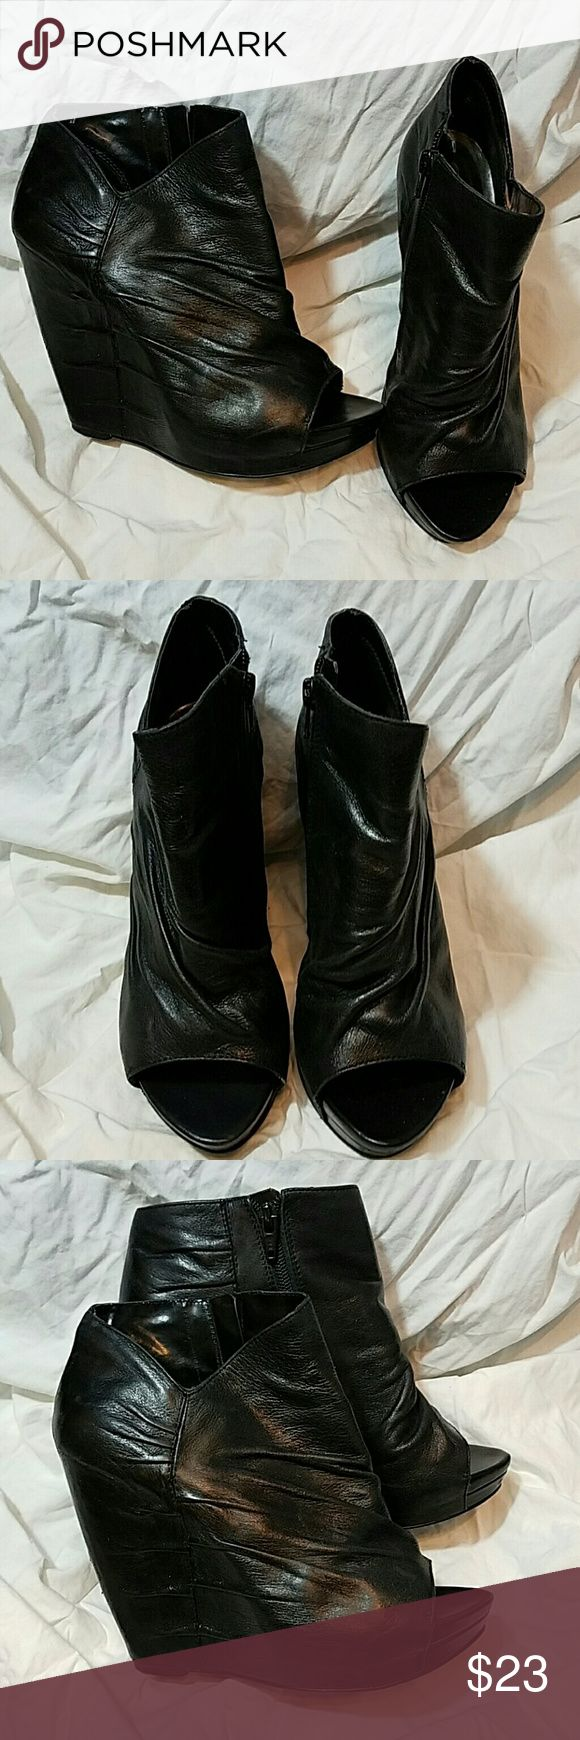 CARLOS Black 'Camino' Peep Toe Wedge Booties CARLOS by Carlos Santana Black 'Camino' Peep Toe Wedge Booties. Great condition, wear noted in photos.    Size 7.5 Carlos Santana Shoes